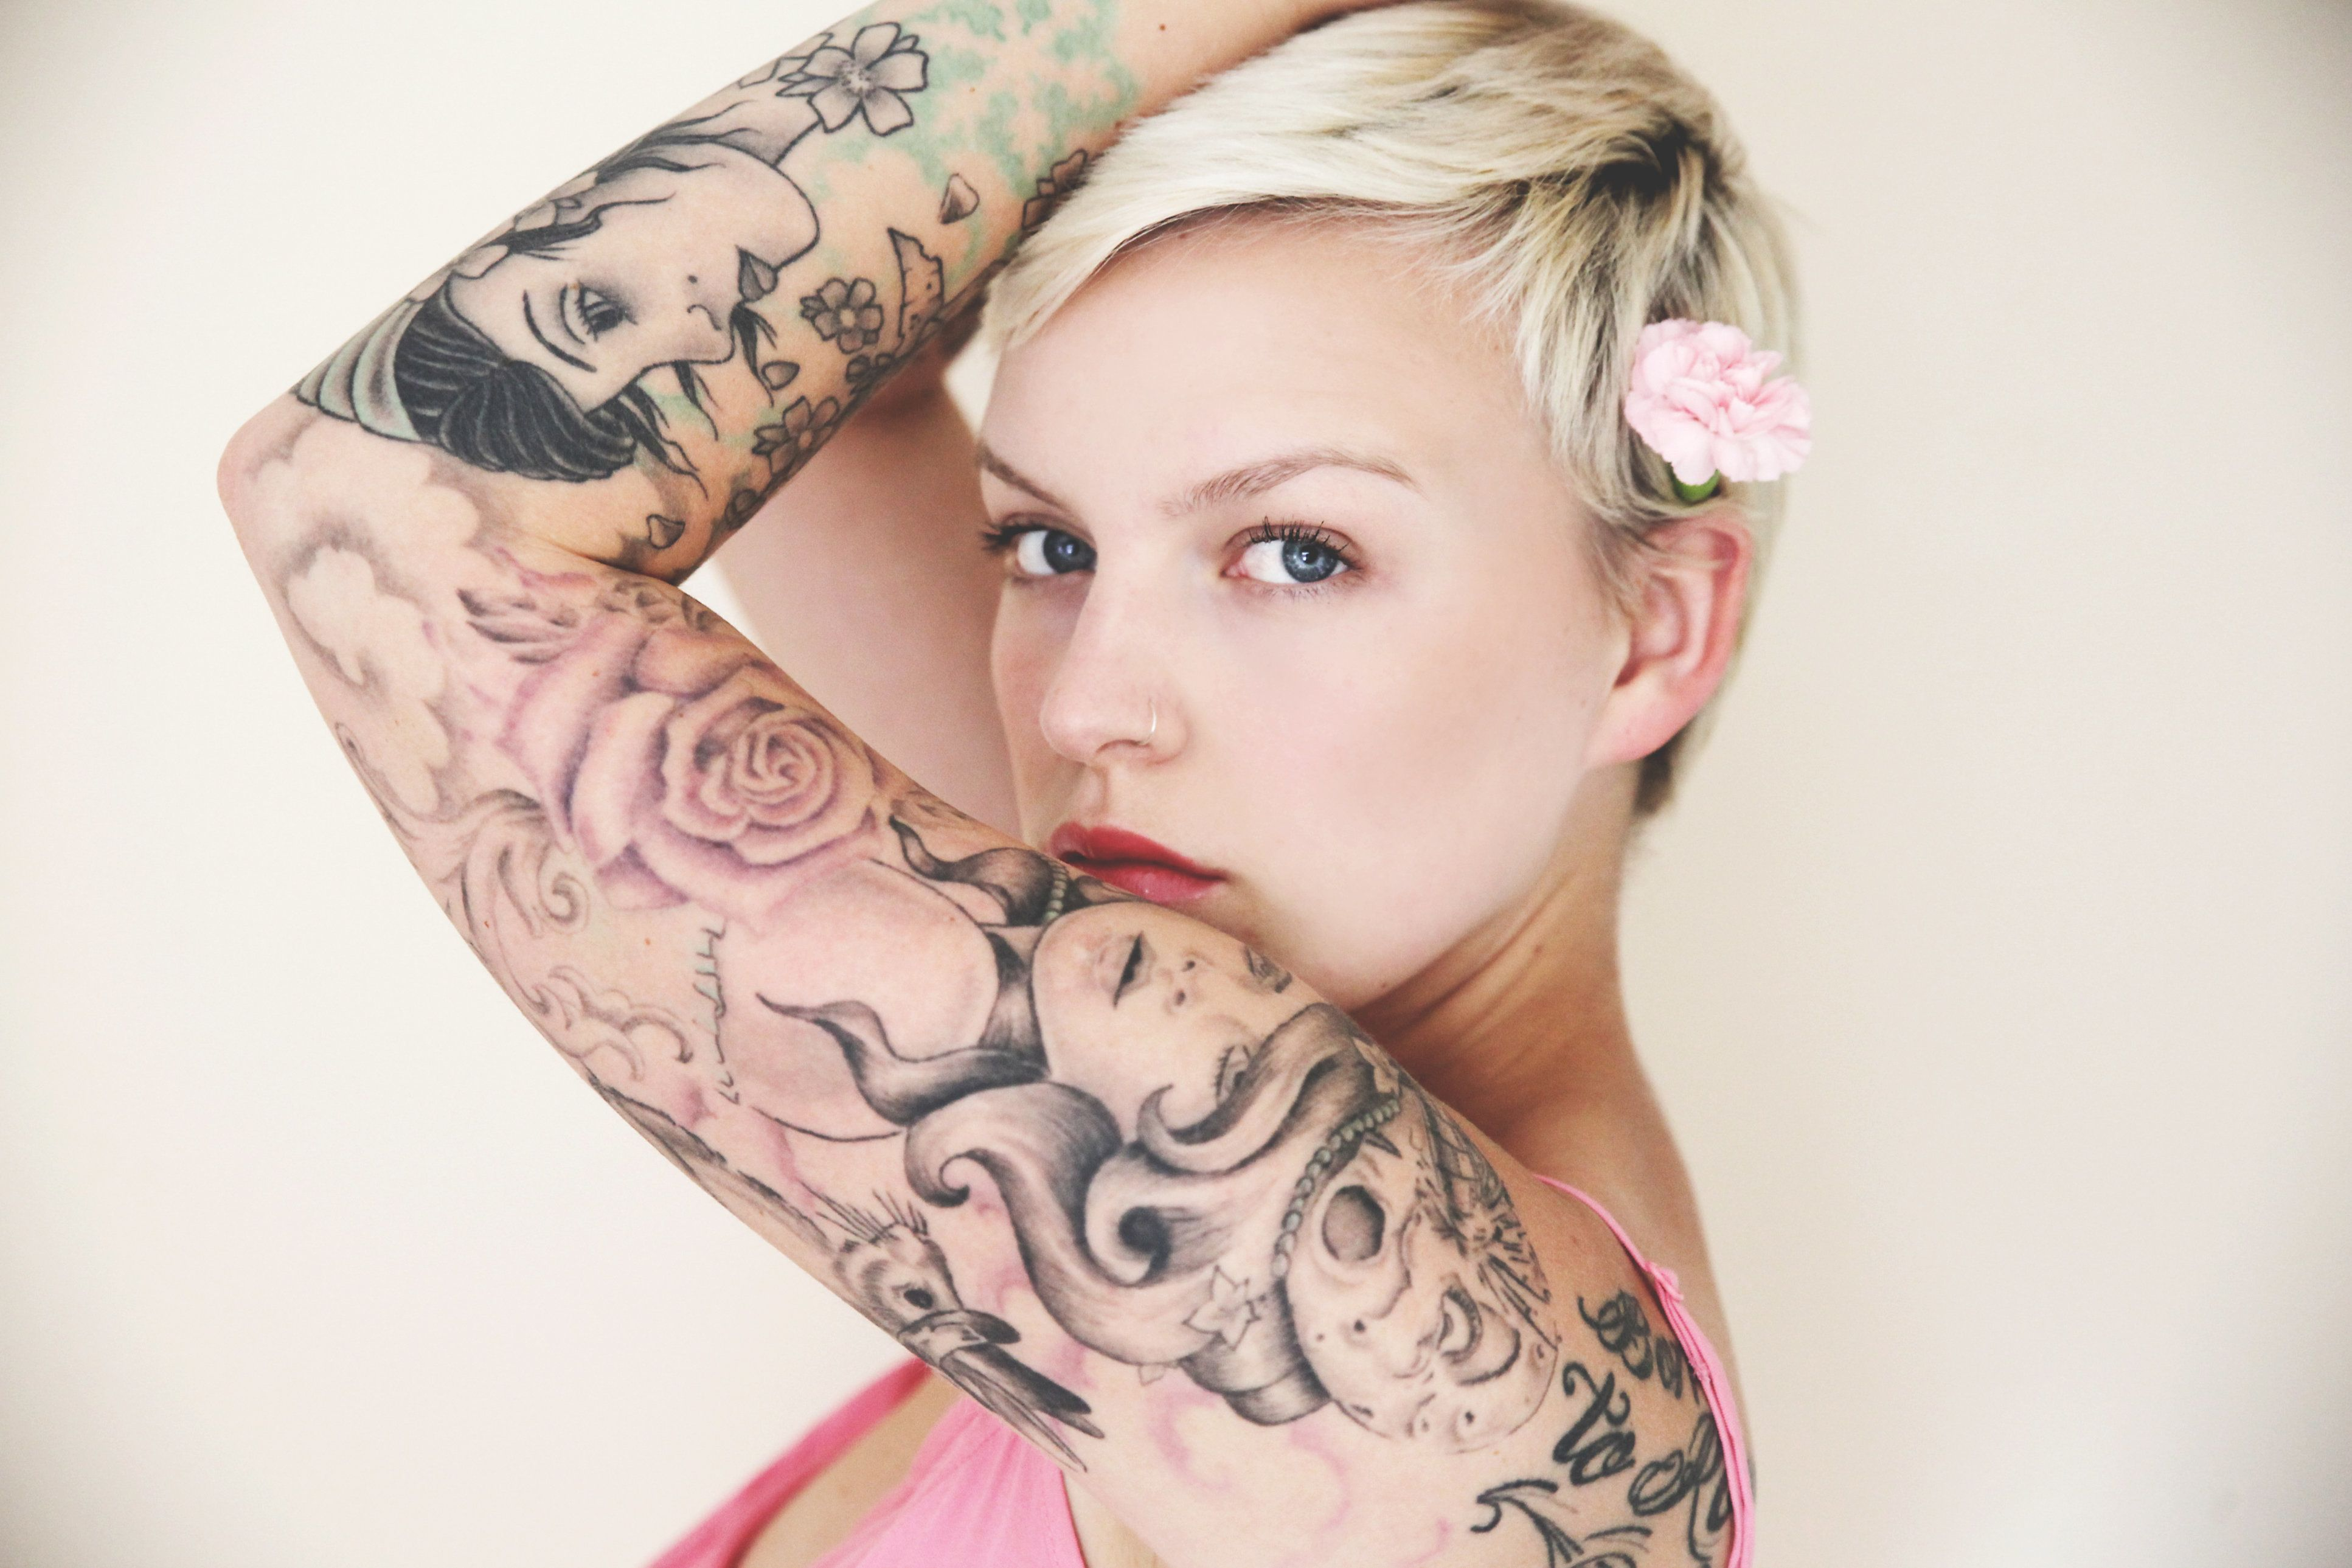 A recent study suggests that having multiple tattoos could mean your immune system has trained itself to better respond